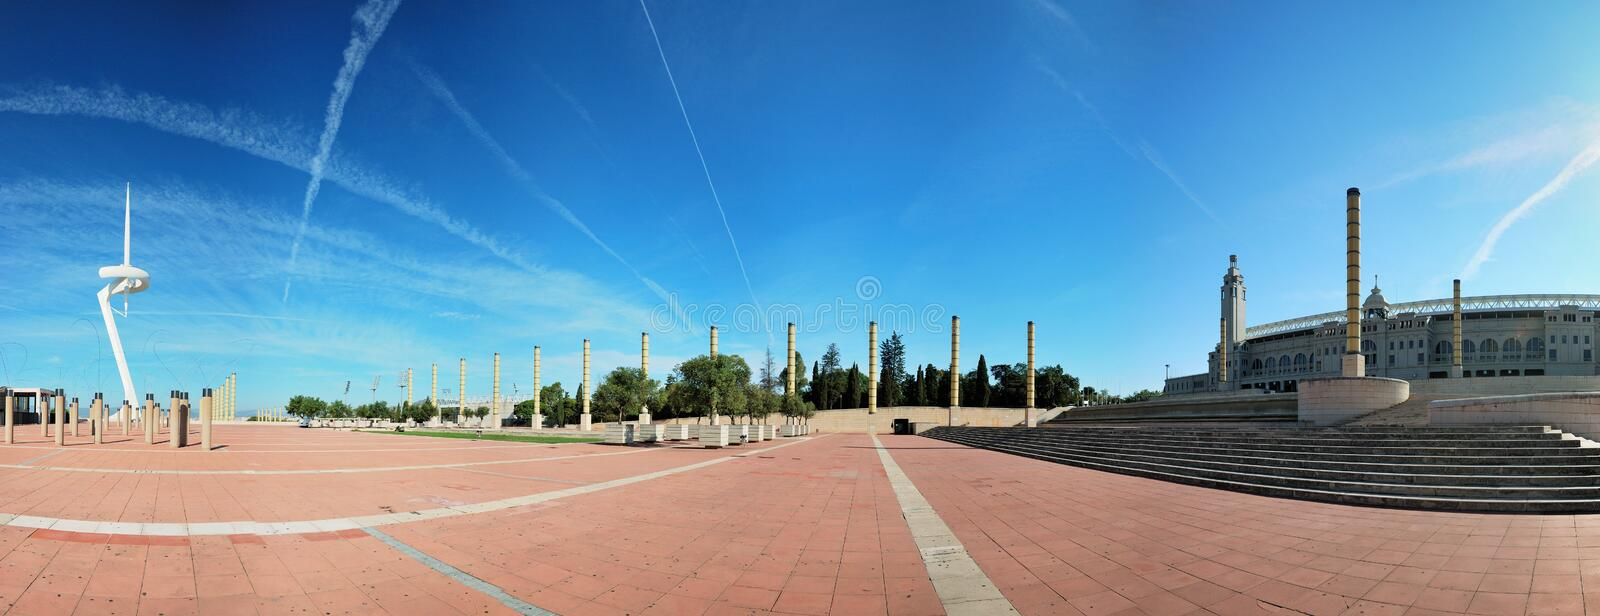 Barcelone, ville olympique photographie stock